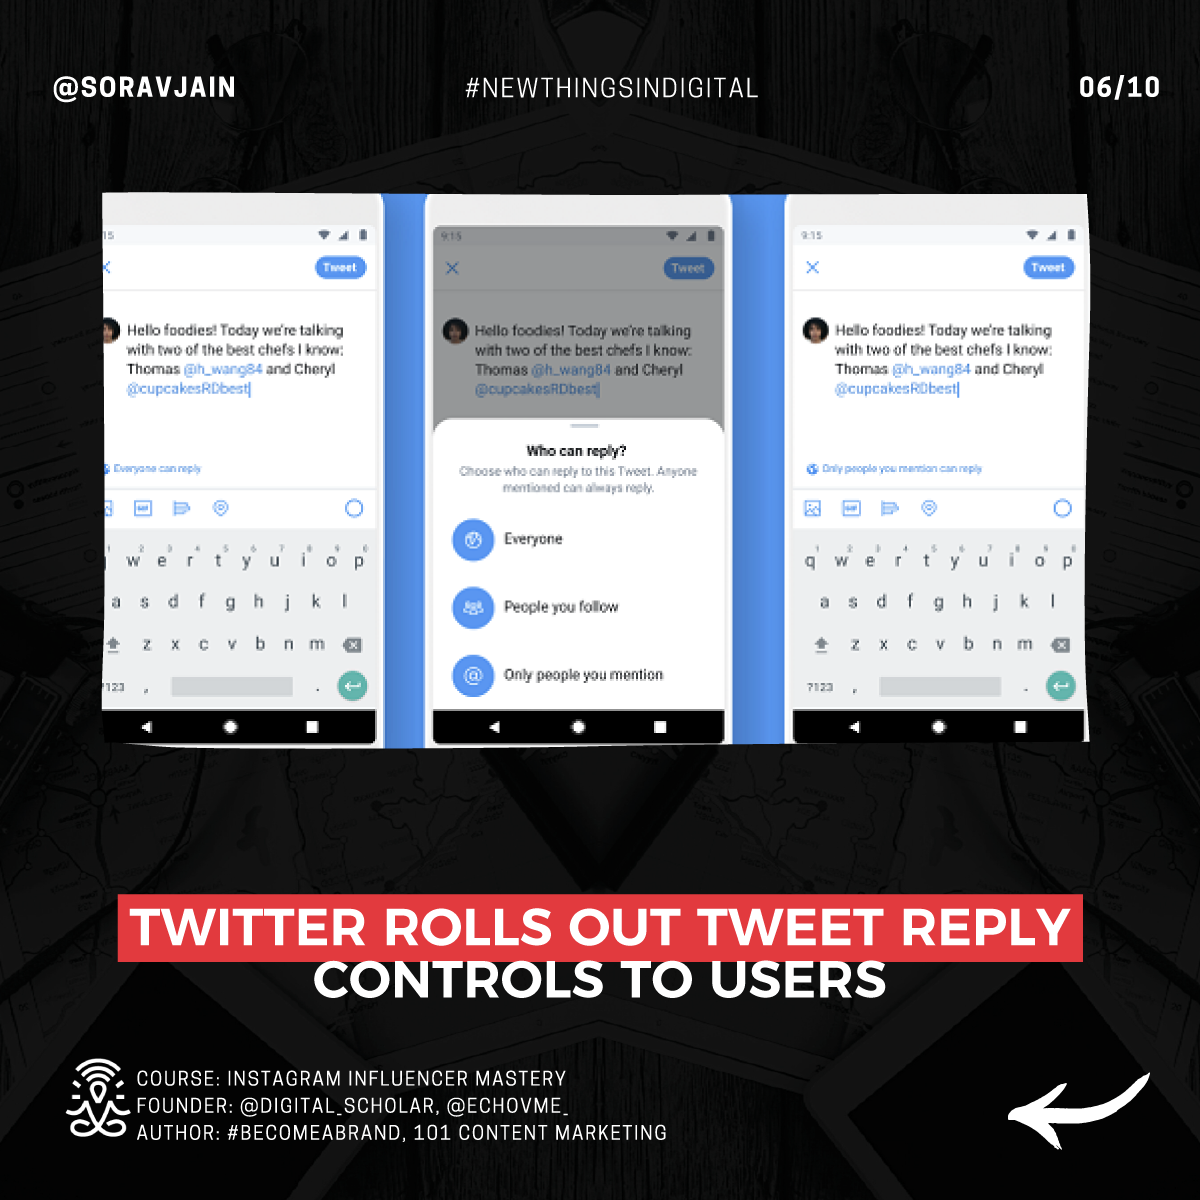 Twitter rolls out Tweet reply controls to users